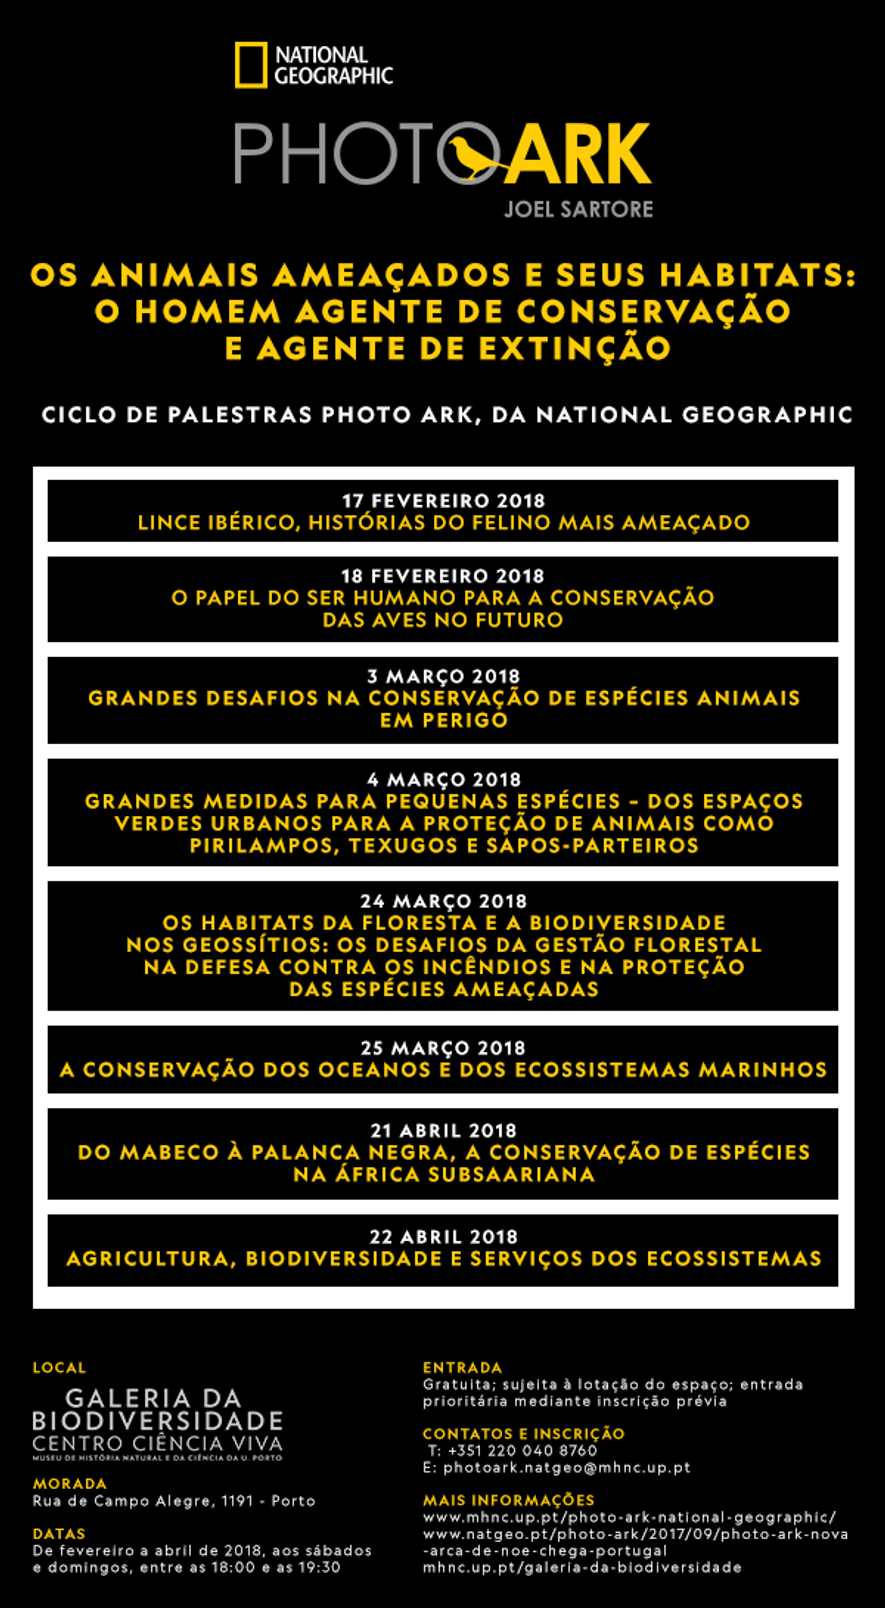 Ciclo de Palestras Photo Ark